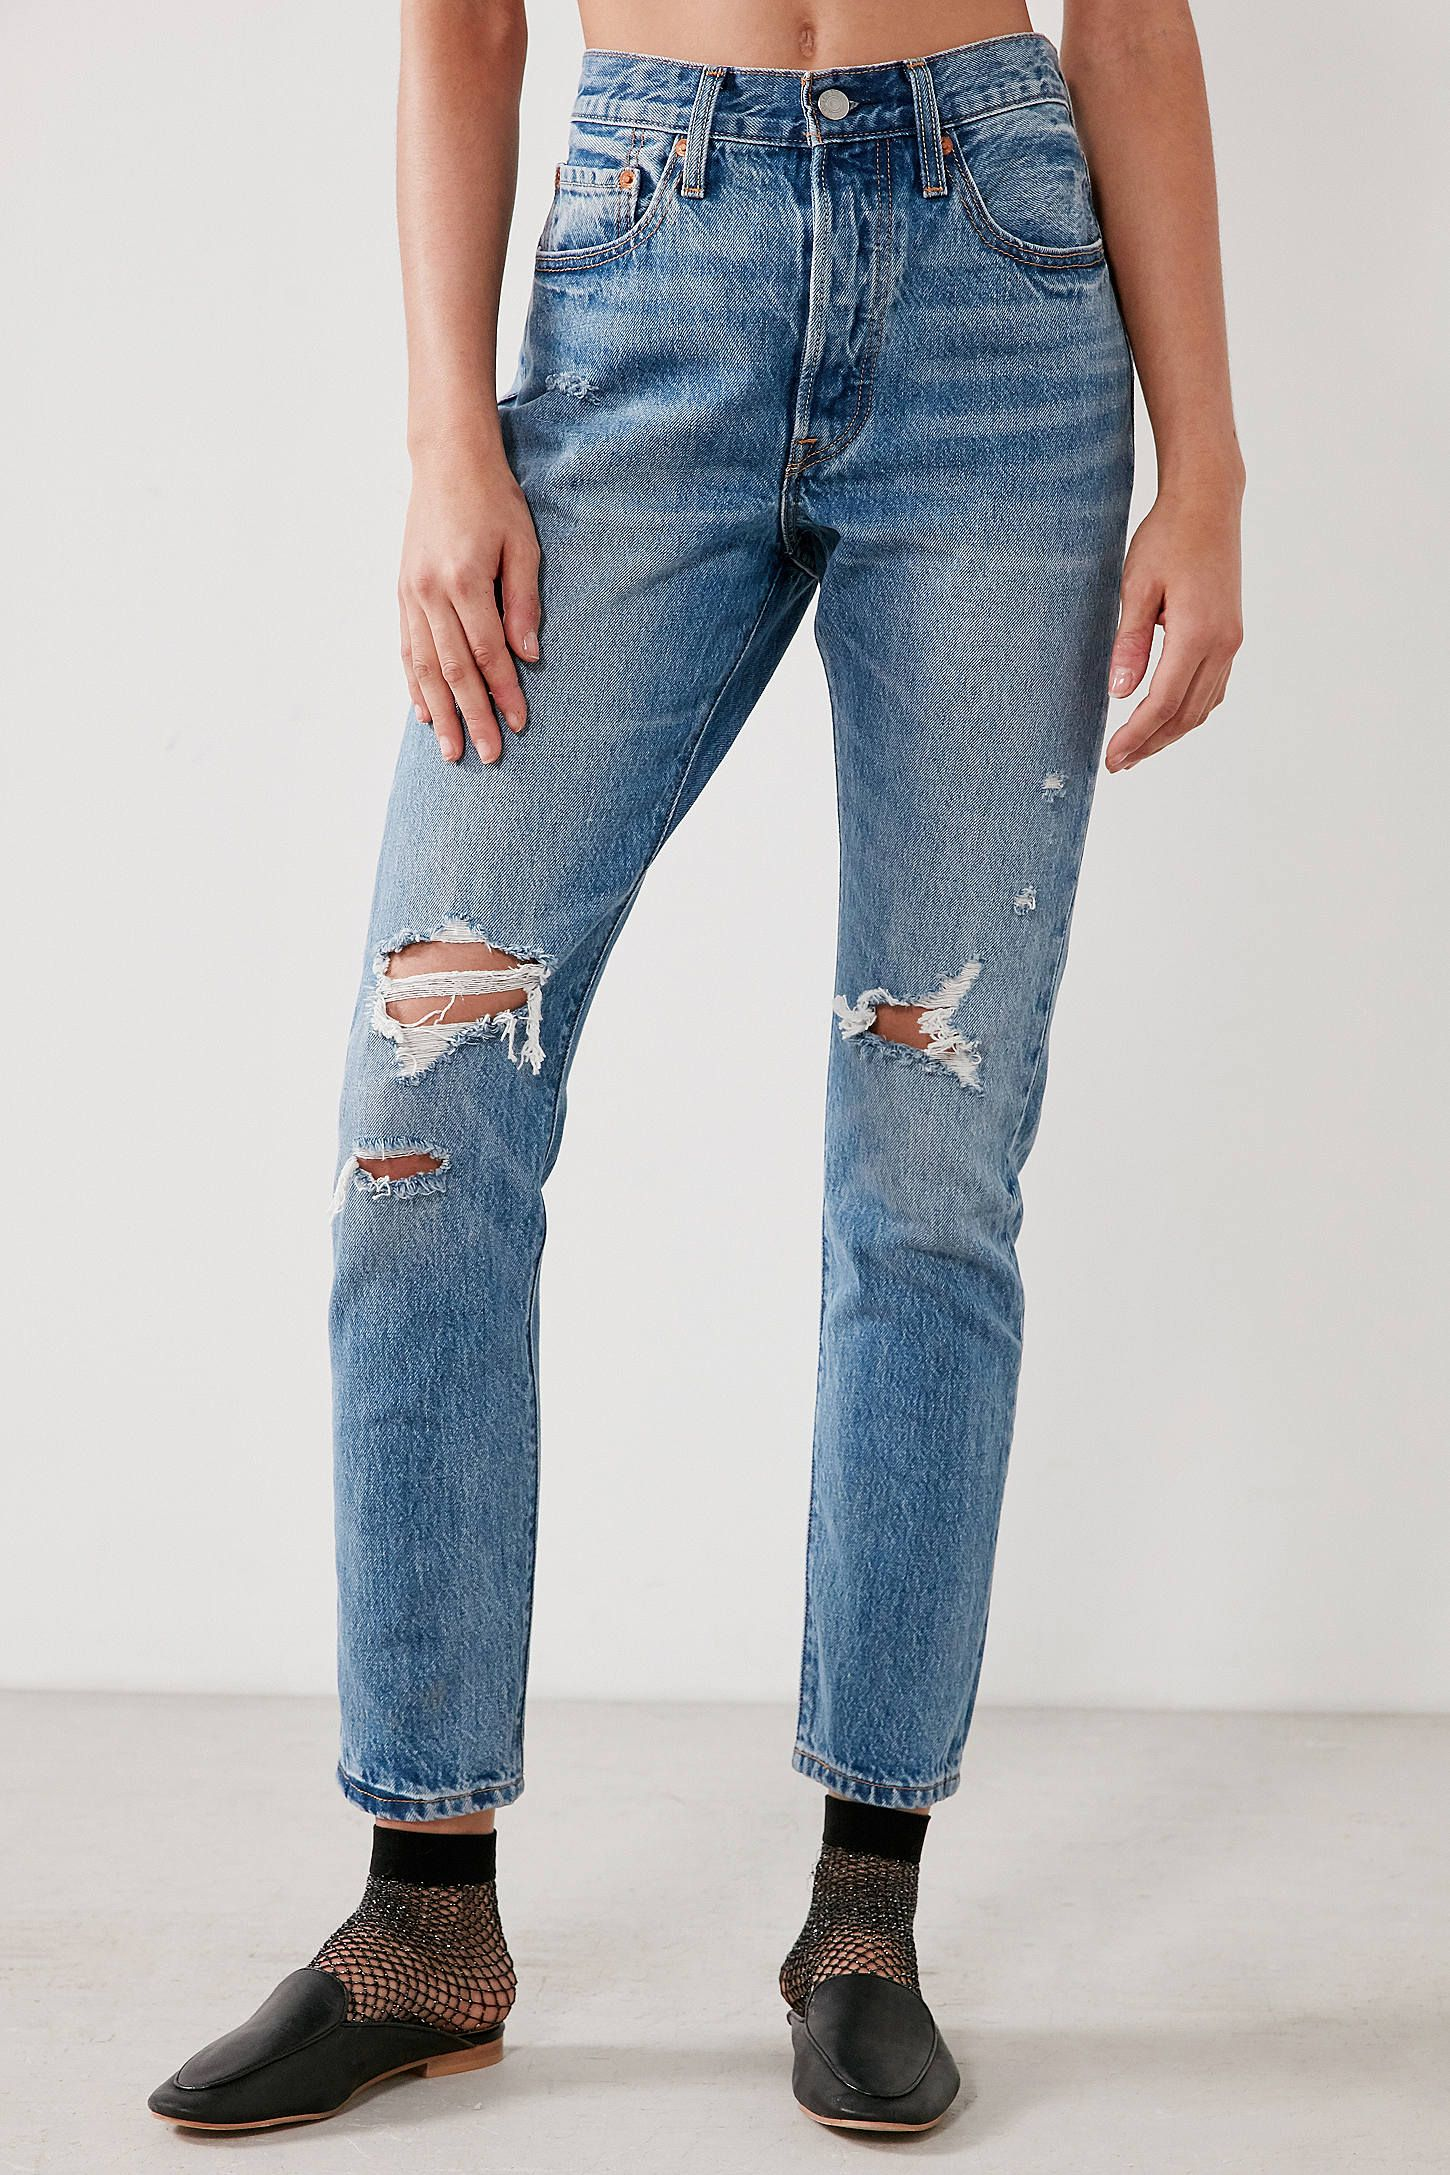 4833f82a259c53 Shop Levi's 501 Skinny Jean – Old Hangout at Urban Outfitters today. We  carry all the latest styles, colors and brands for you to choose from right  here.